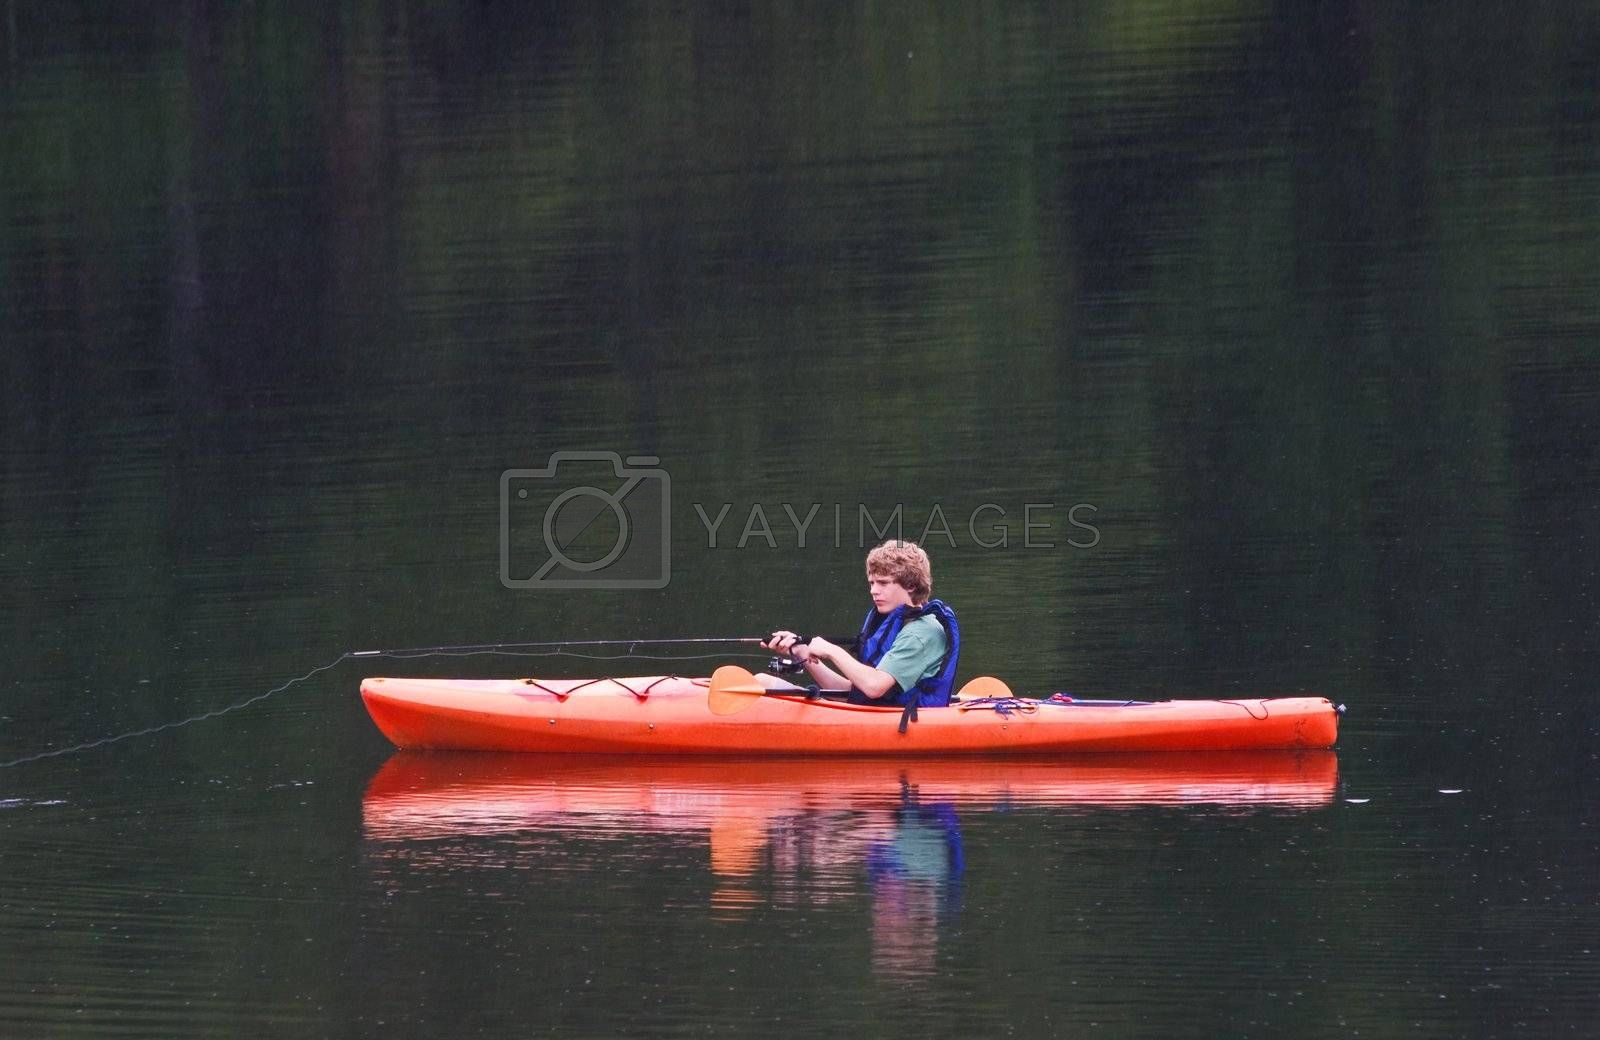 A young teenage boy fishing from a kayak in the evening. It is raining and streaks of rain can be seen against the lake background.